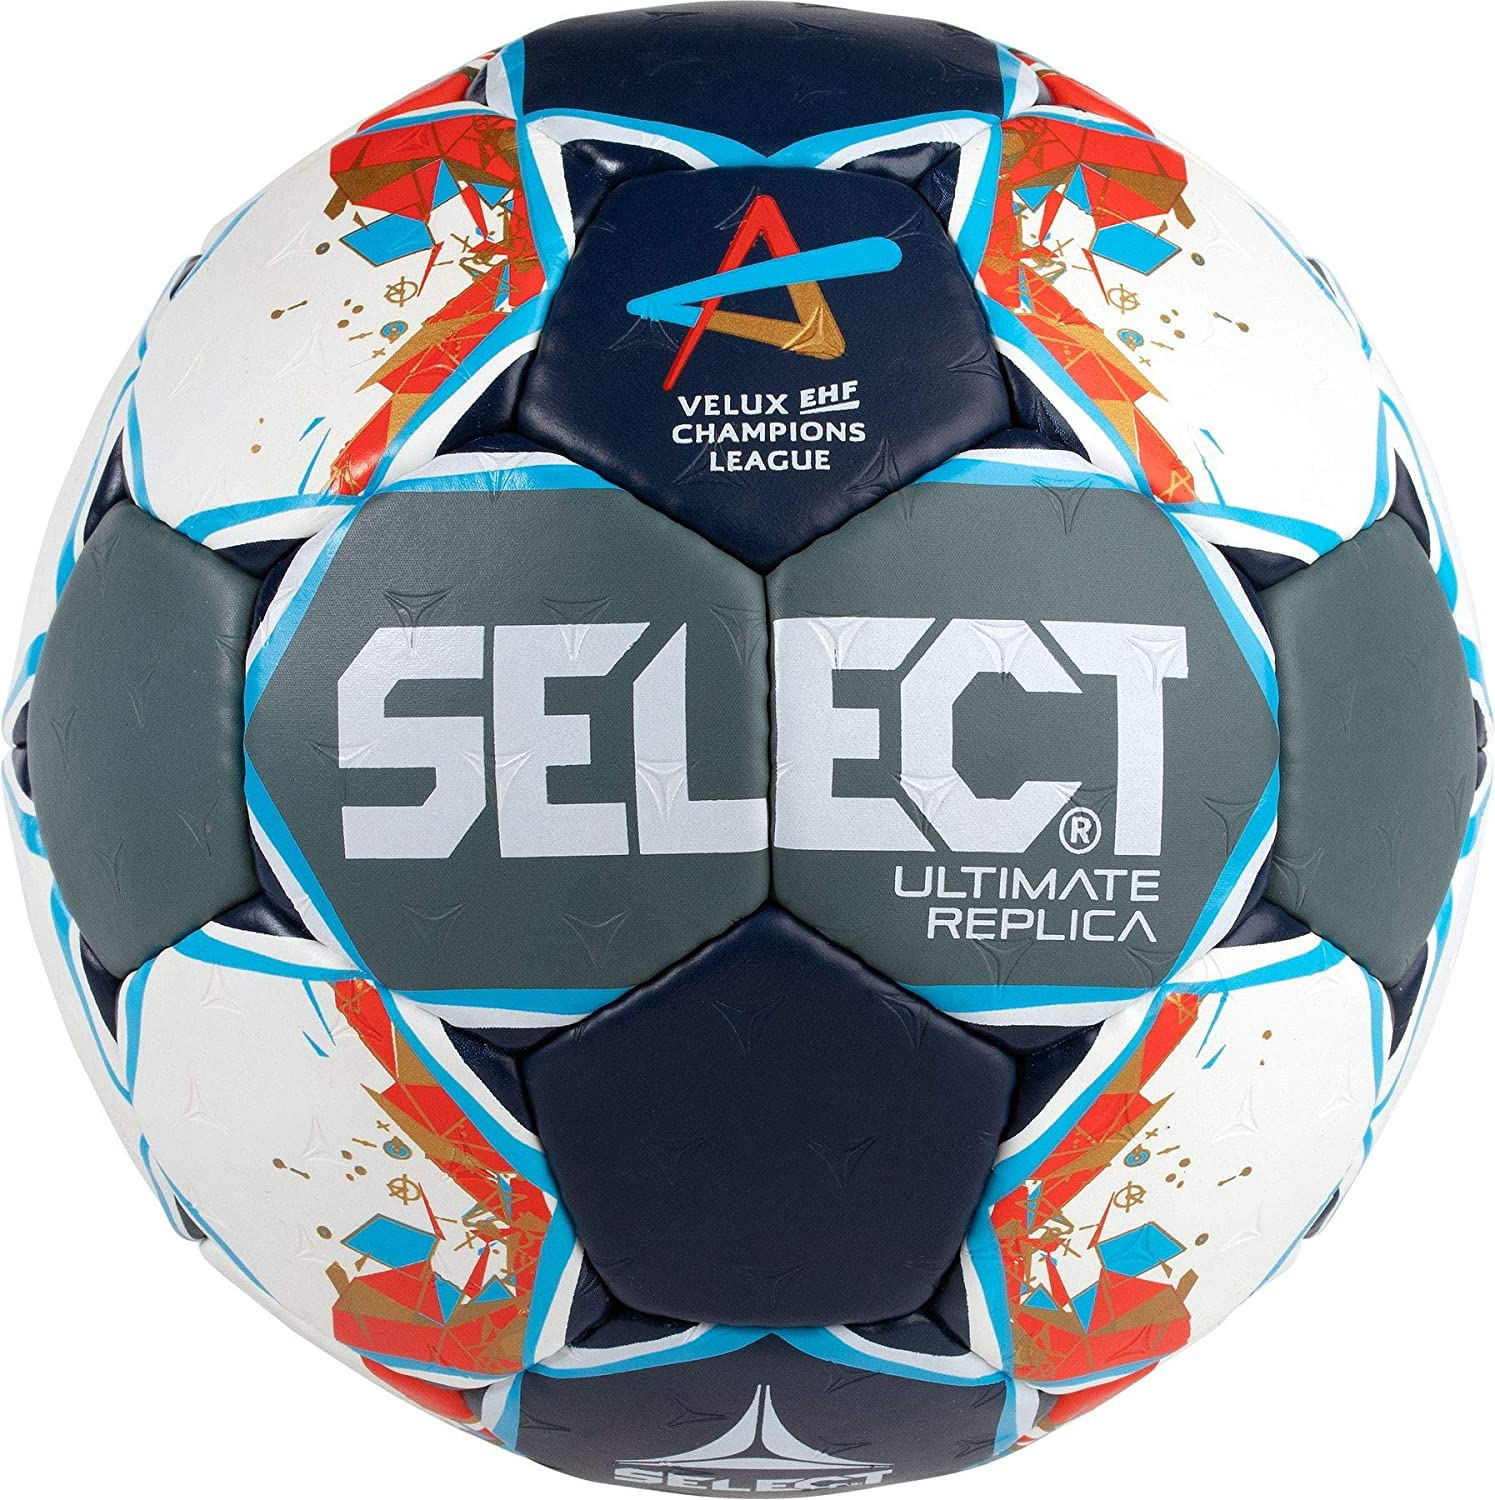 SELECT Ultimate Réplica - Balón Unisex: Amazon.es: Deportes y aire ...